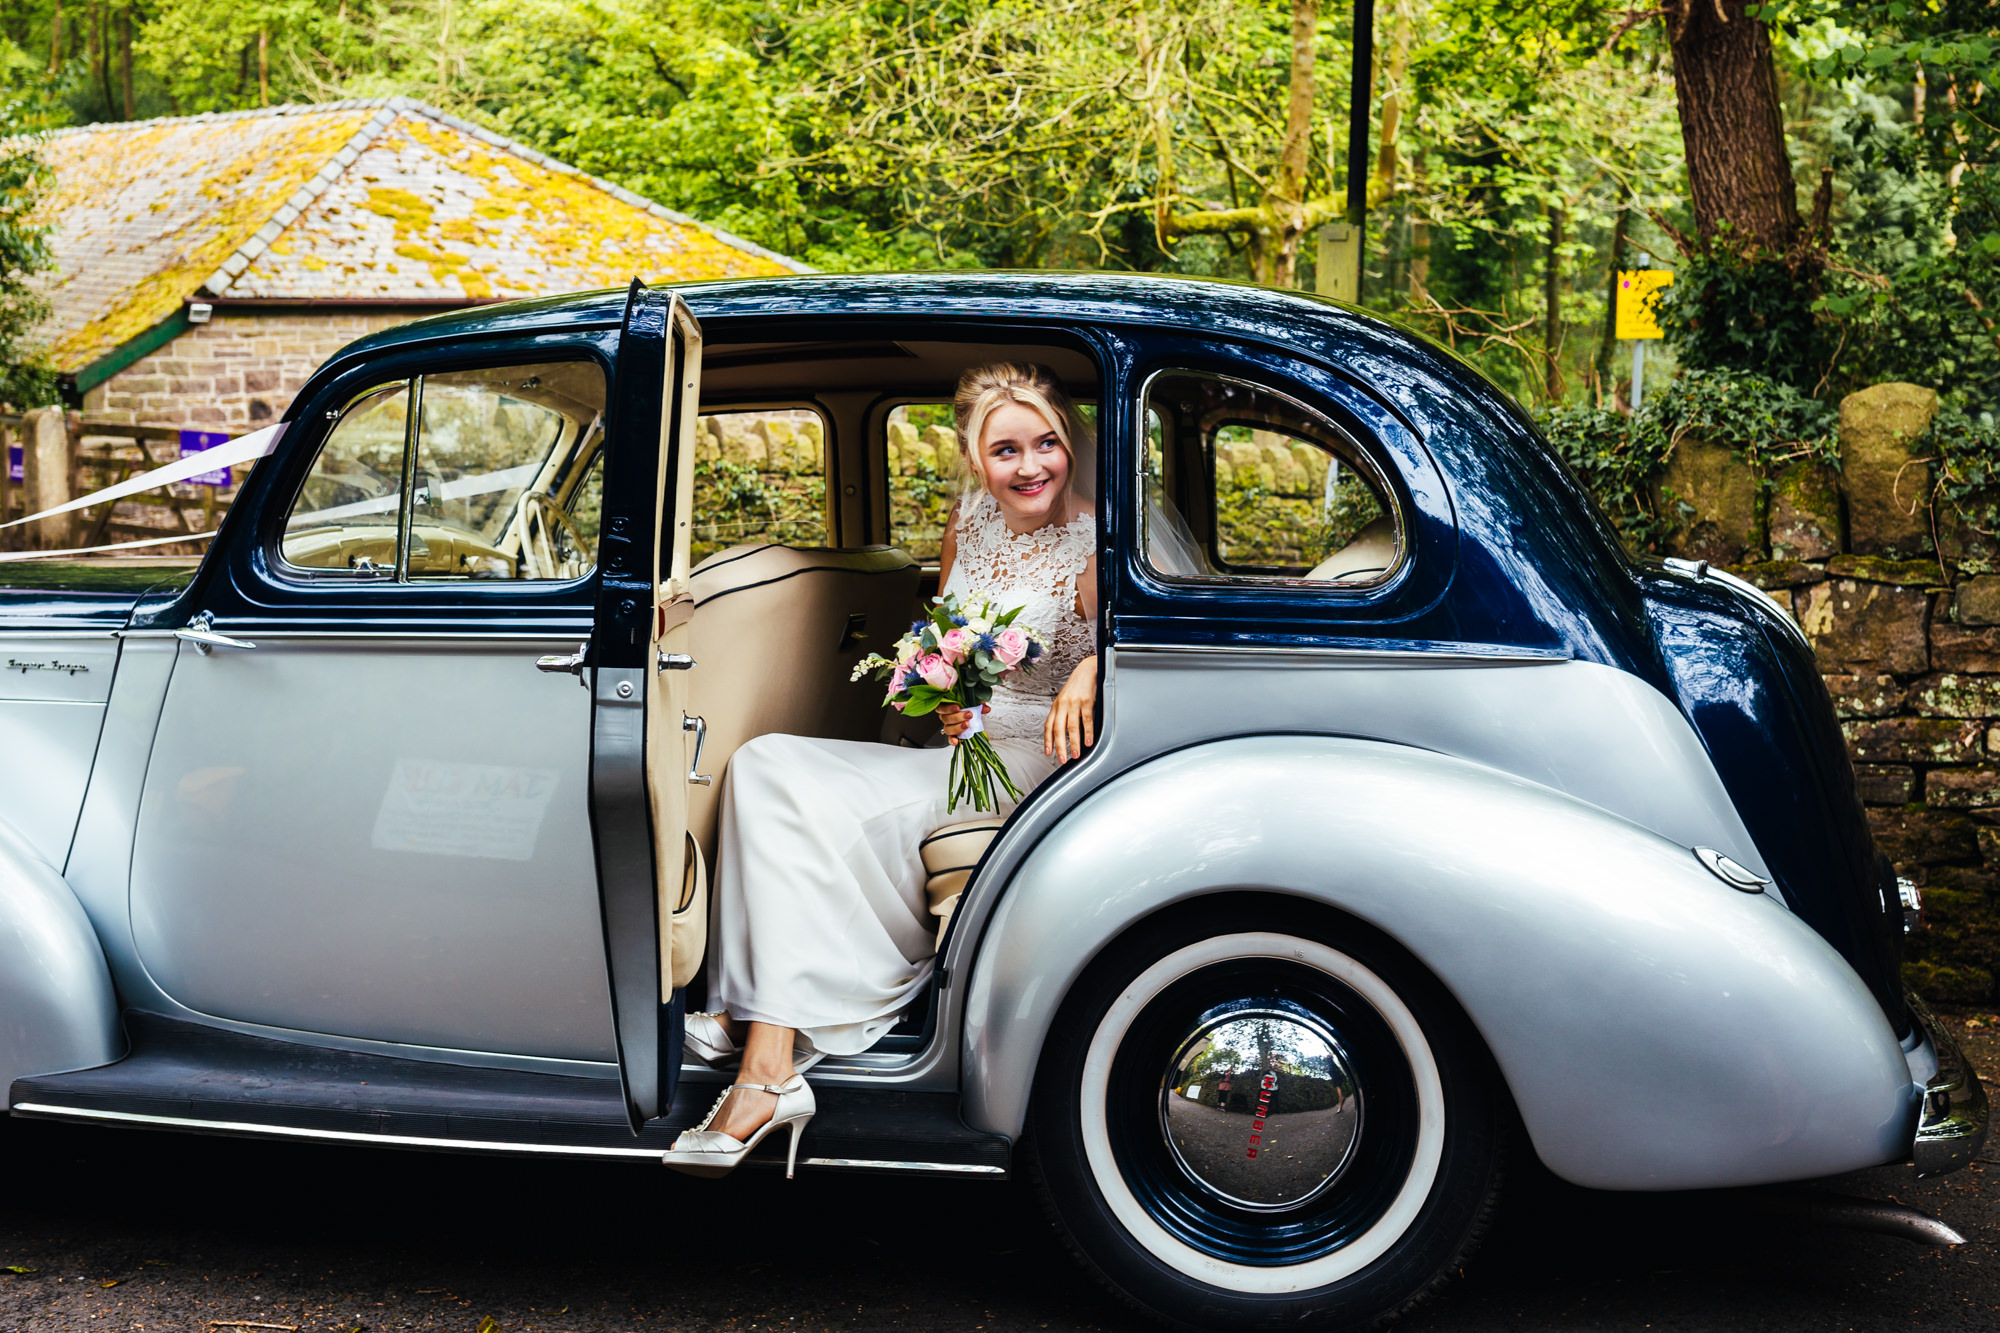 Second Wedding Photographer - Bride leaving car before wedding ceremony